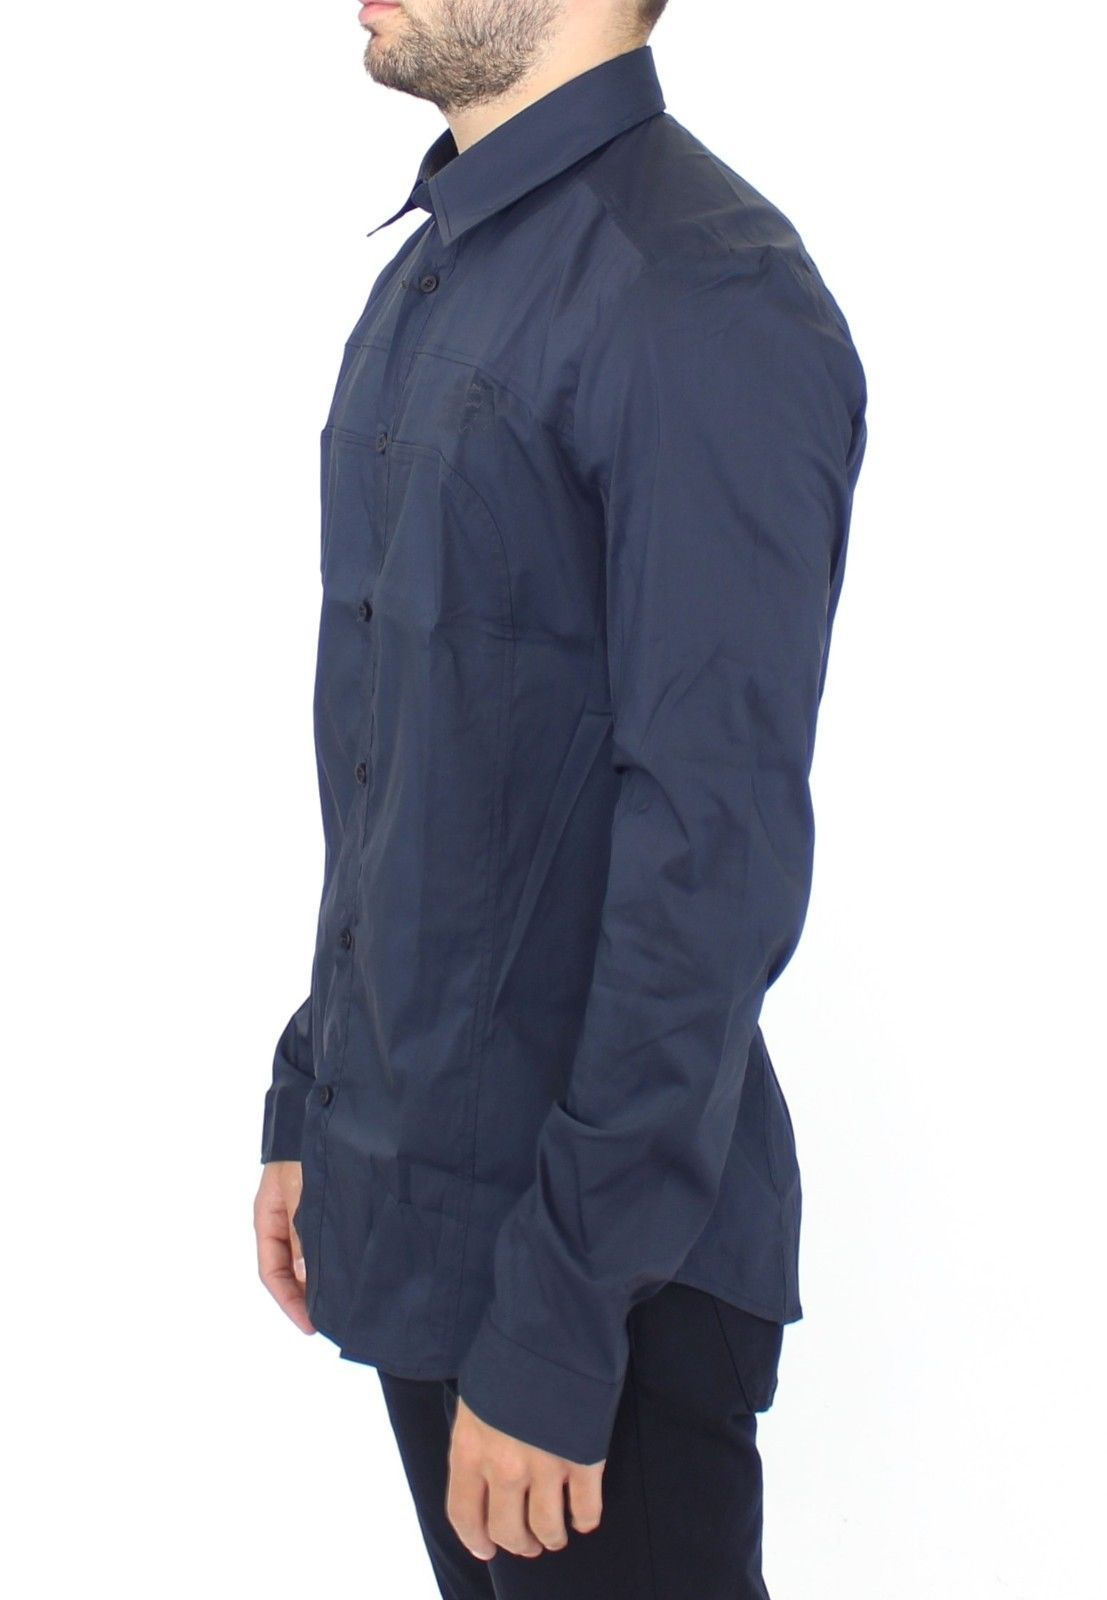 Ermanno Scervino Blue Stretch Cotton Casual Long Sleeve Shirt